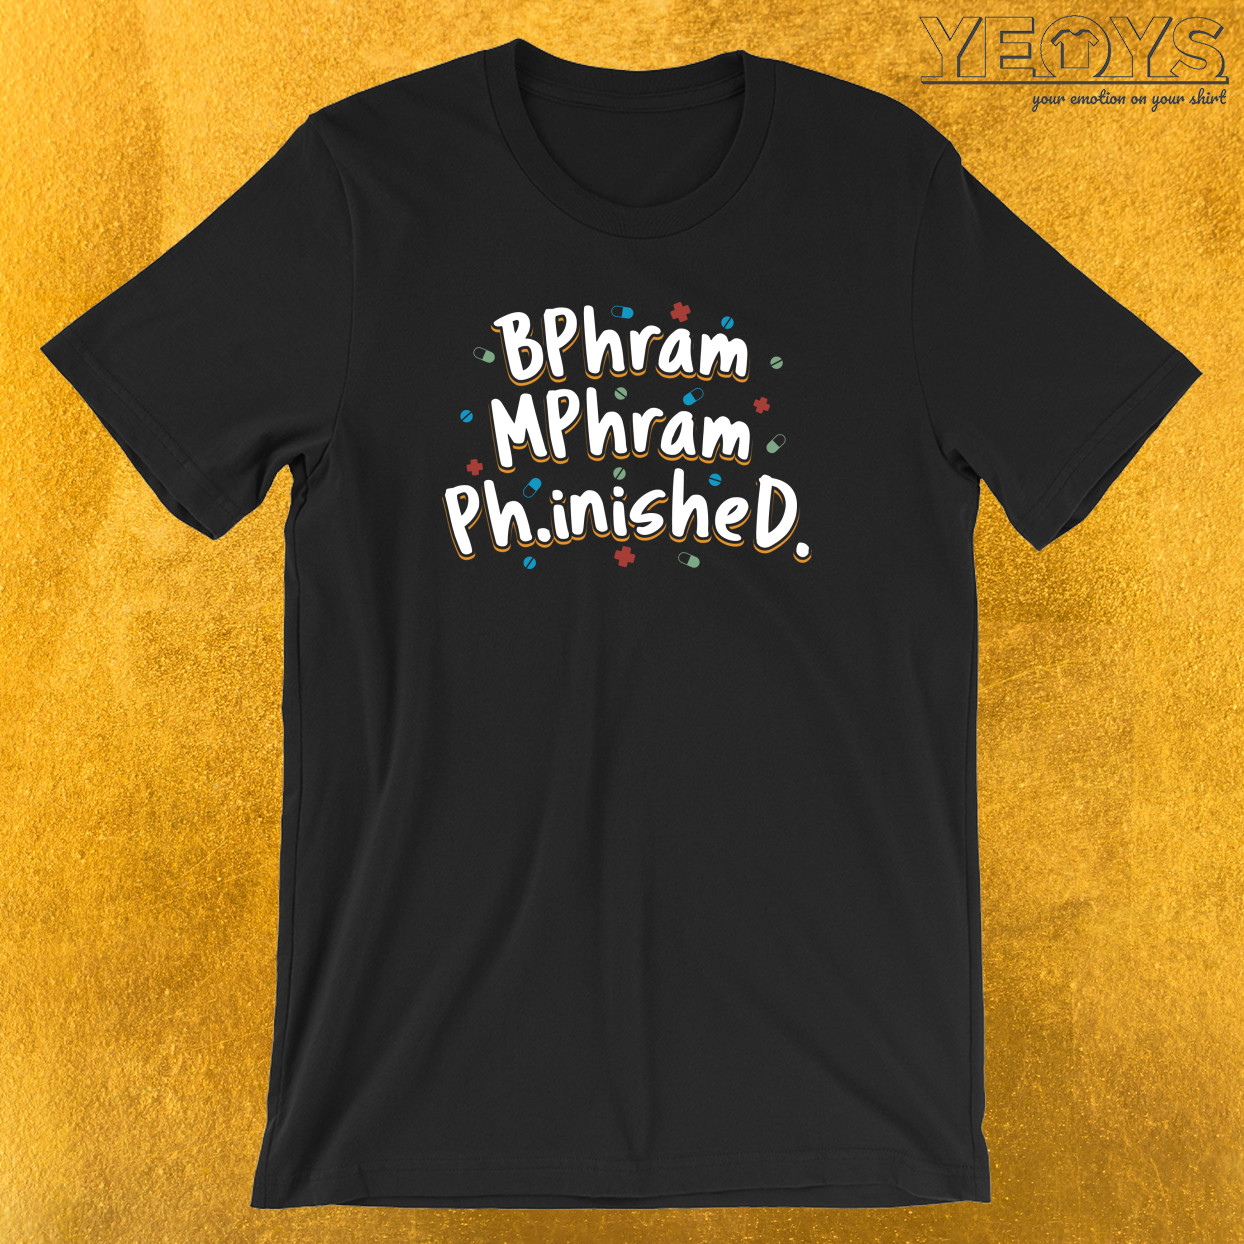 Finished Bachelor Master Doctorate of Pharmacy T-Shirt